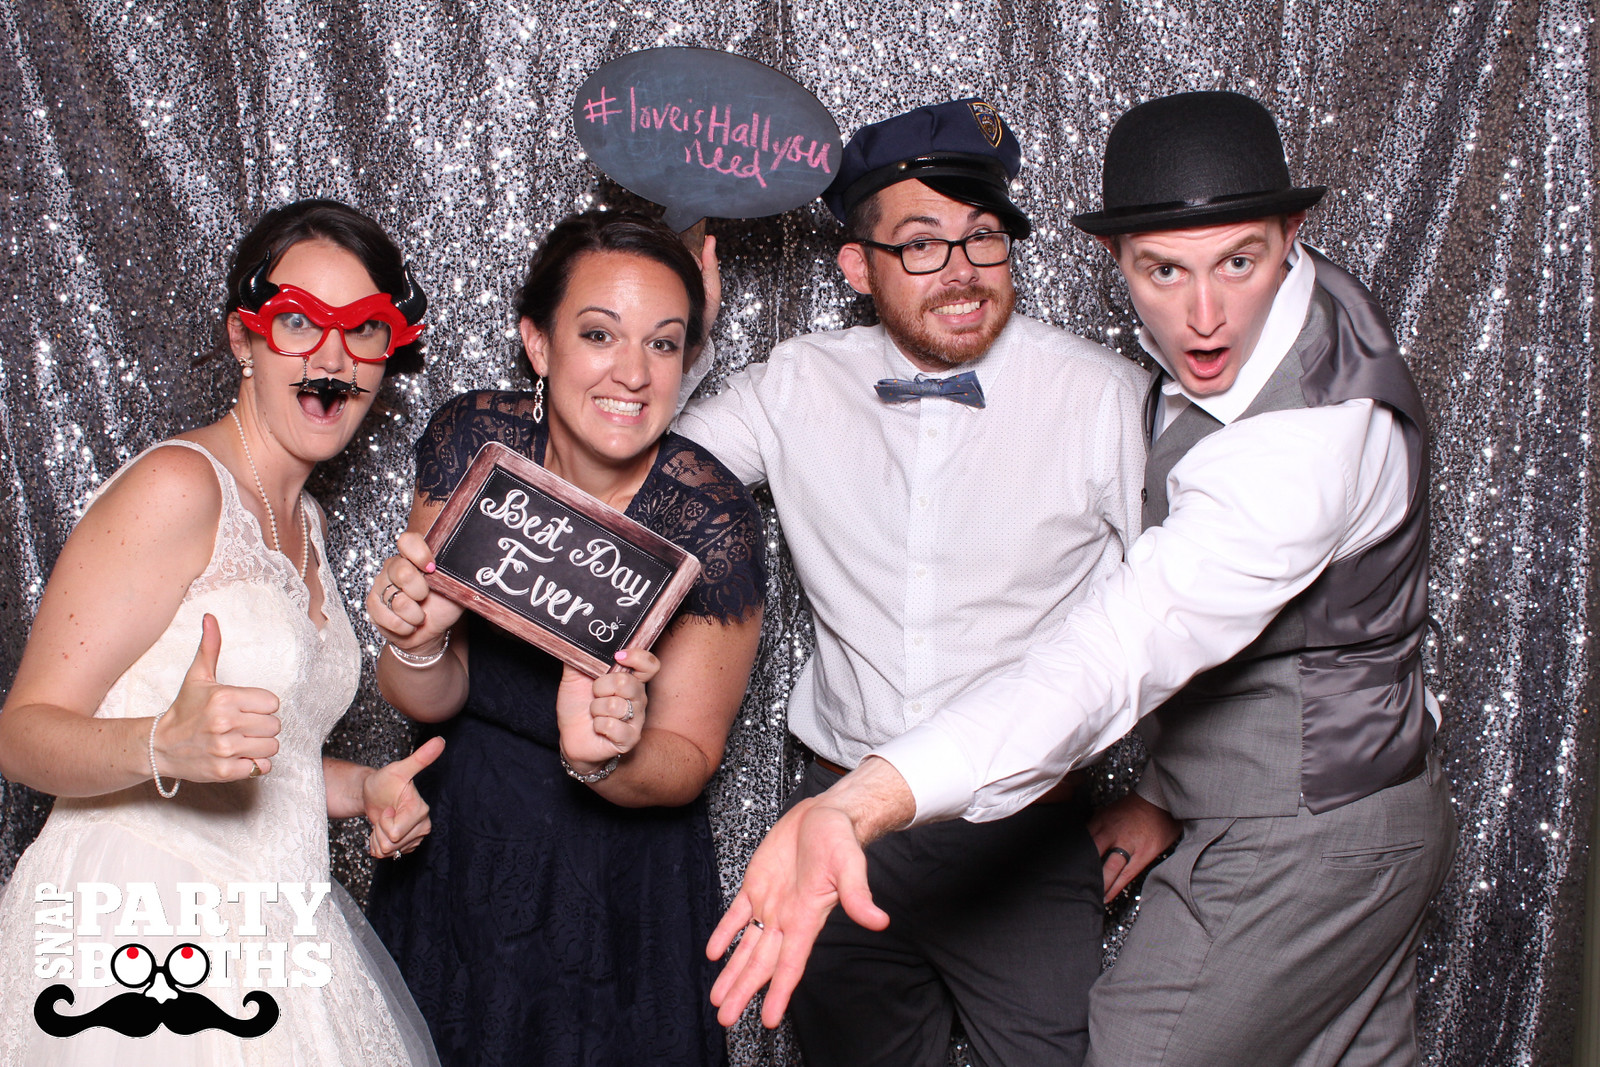 Snap-Party-Booth-49-X3.jpg